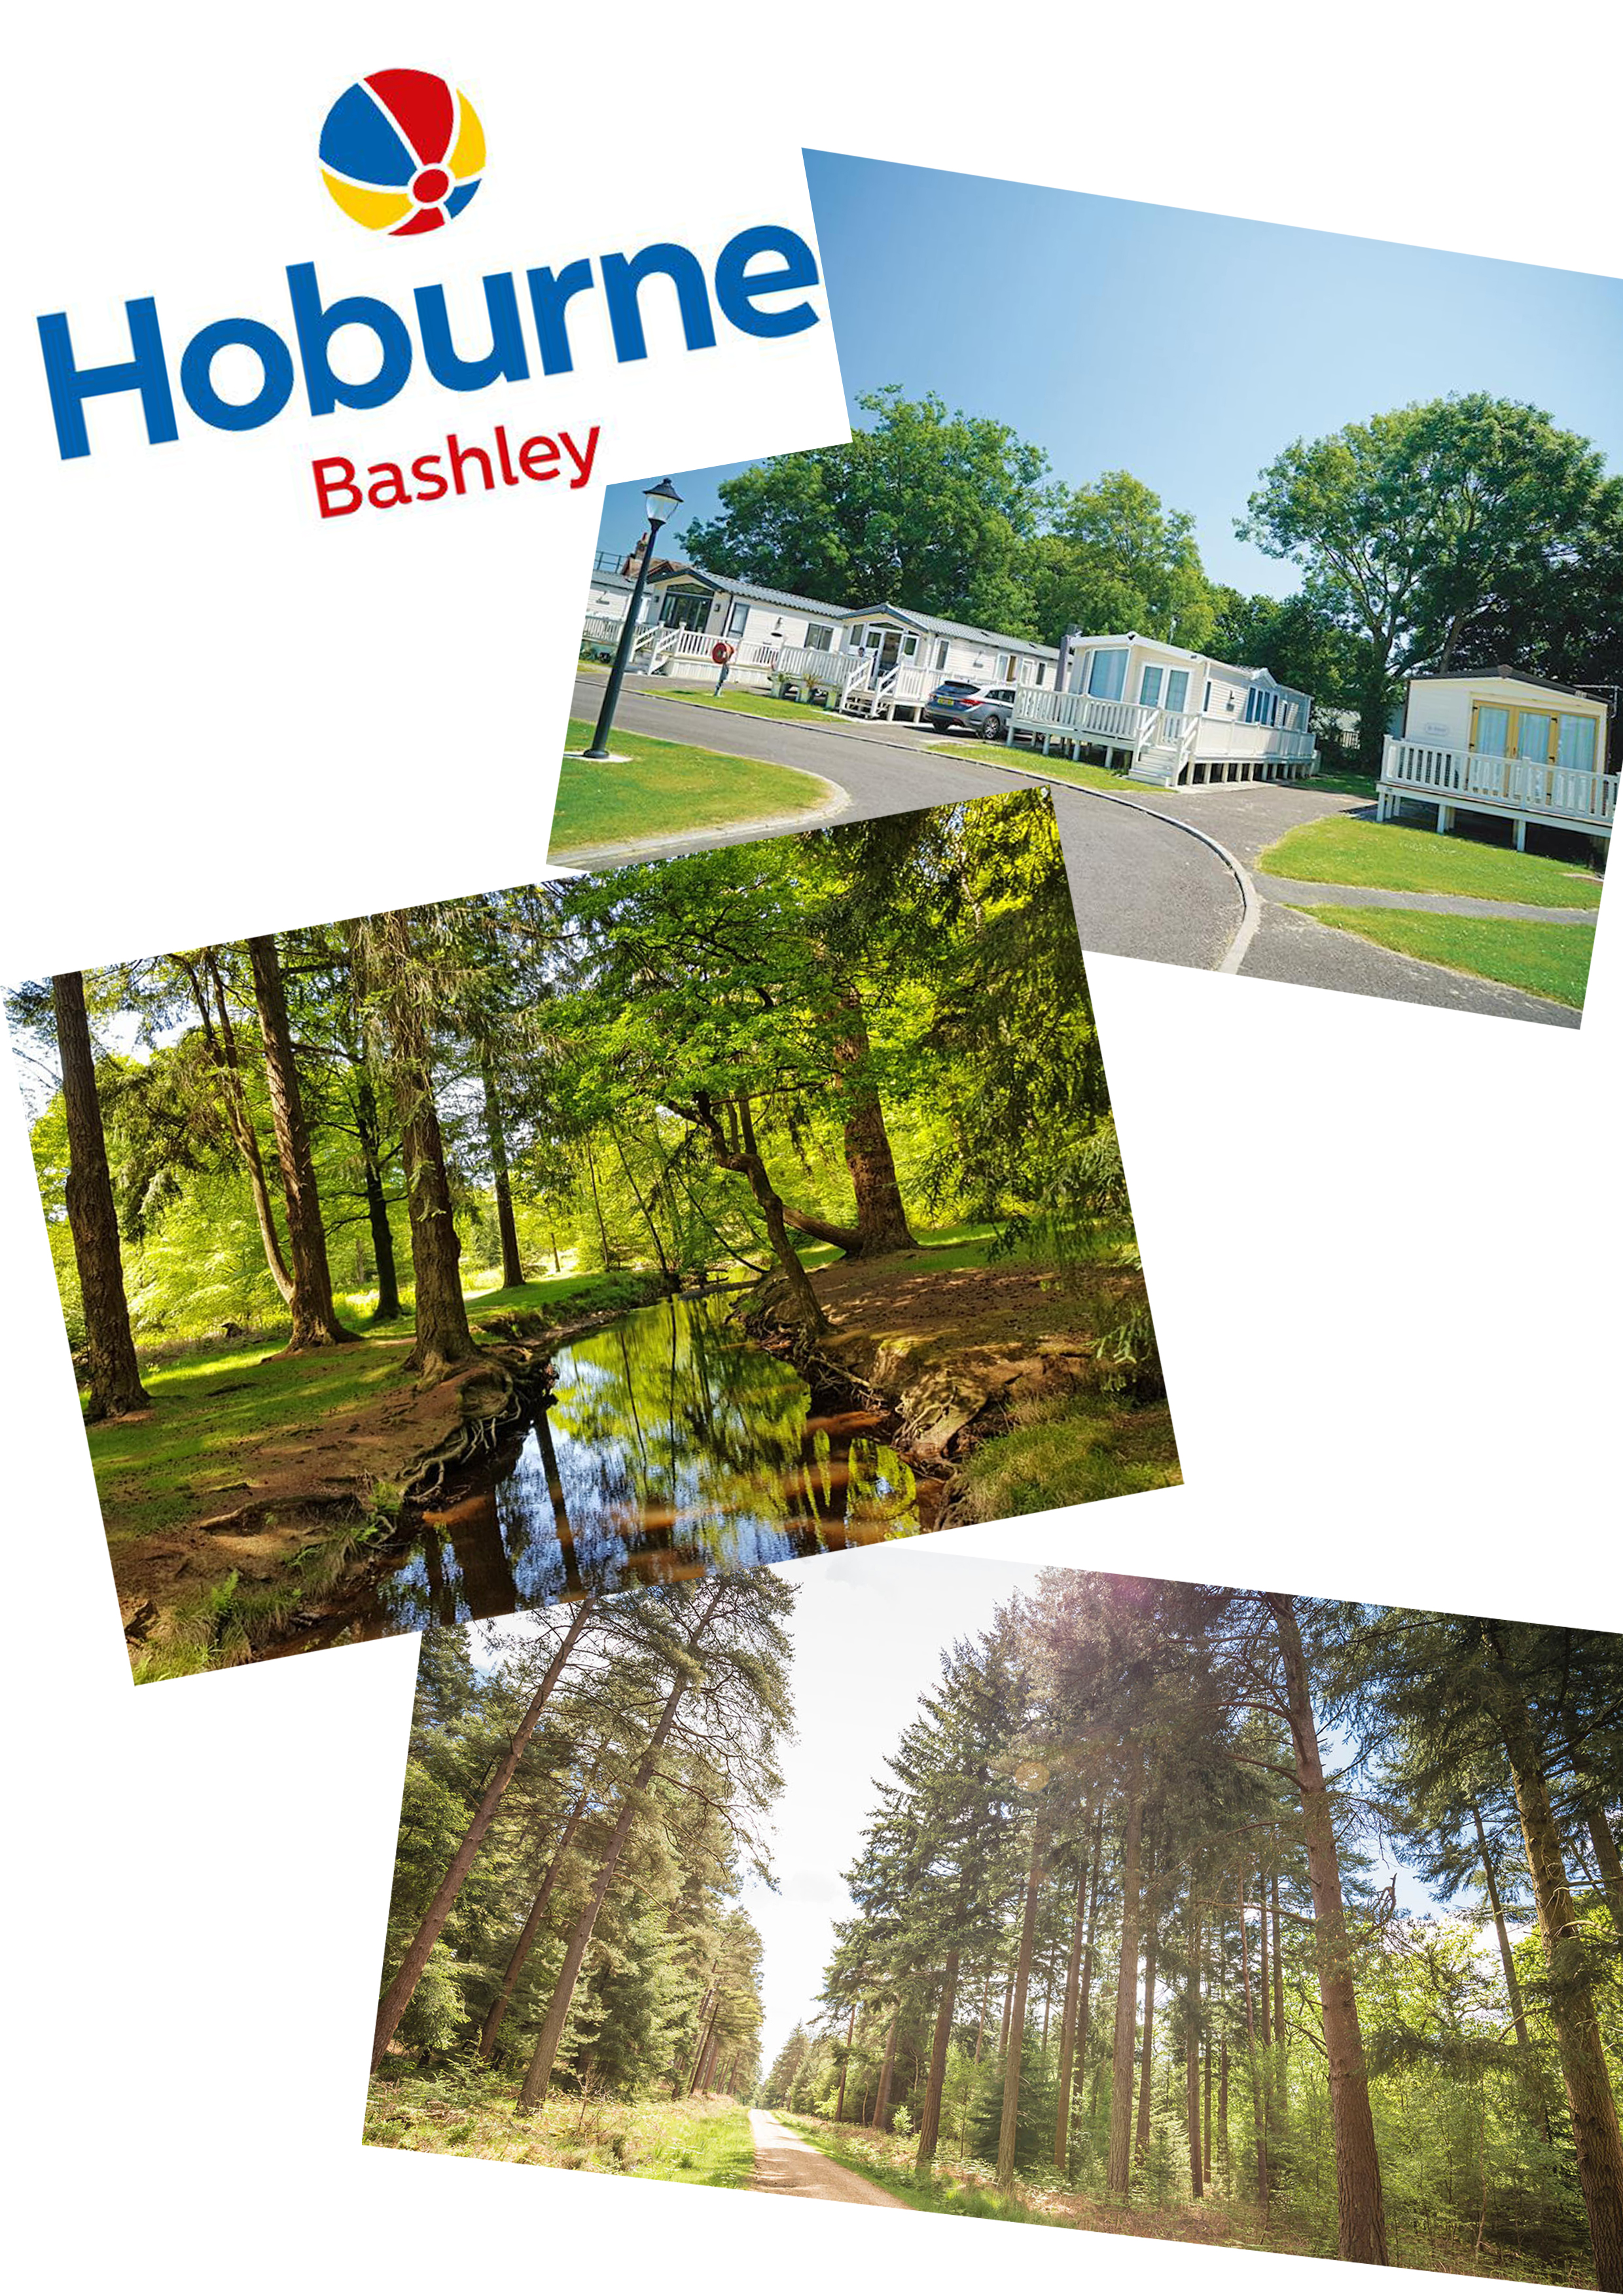 Lot 22 - Summer 2021 - A summer break within the New Forest. Your accomodation will be at hoburne Bashley the